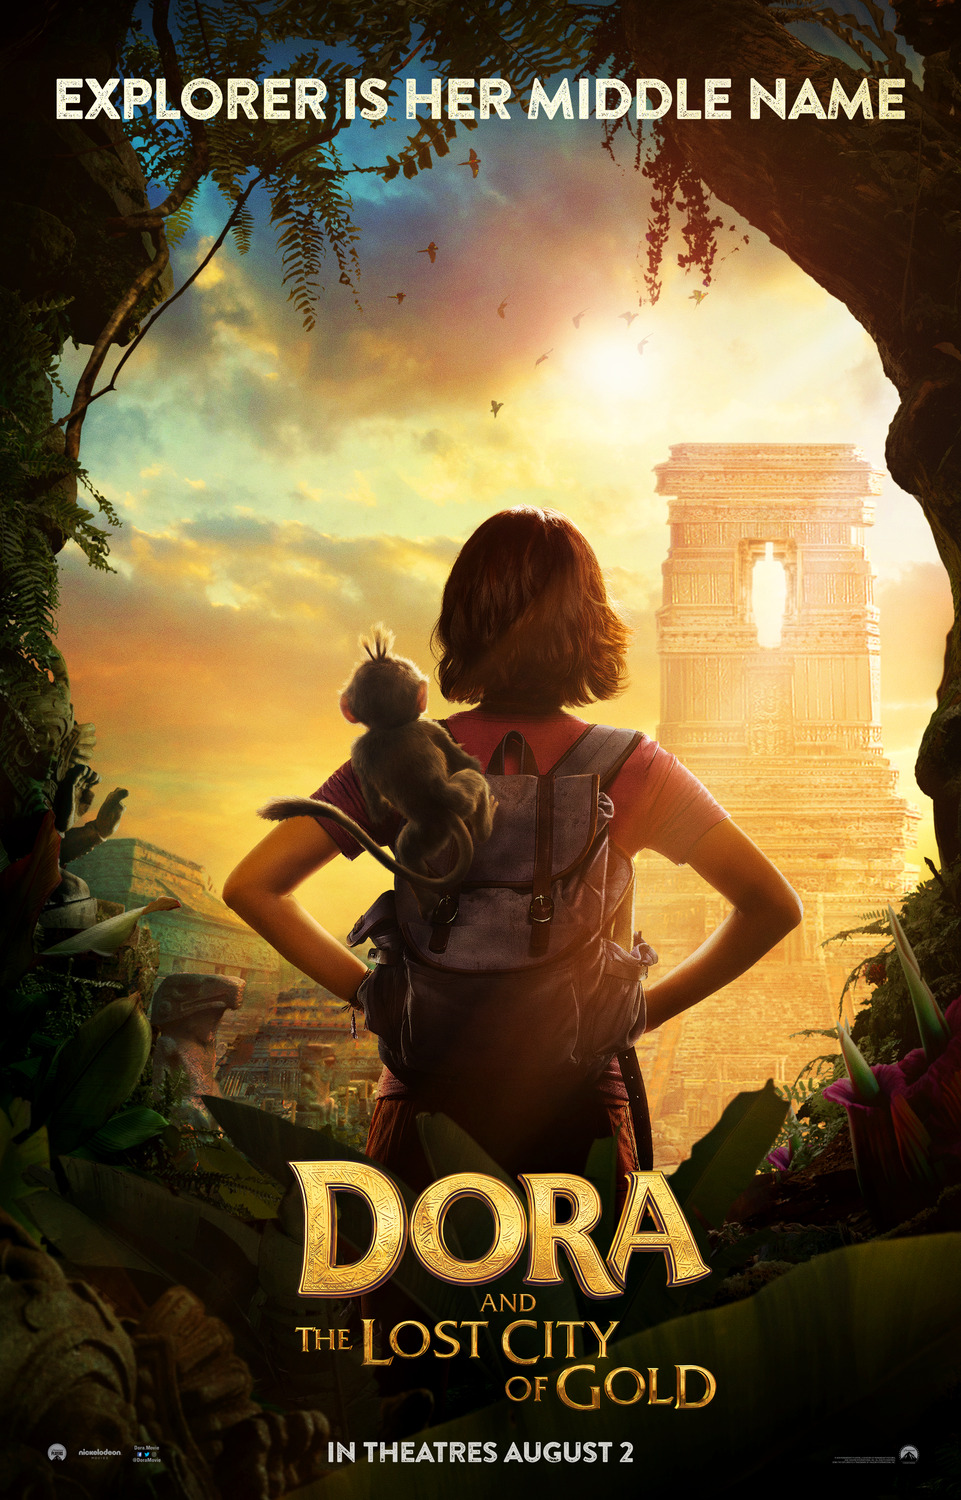 dora_and_the_lost_city_of_gold_xlg